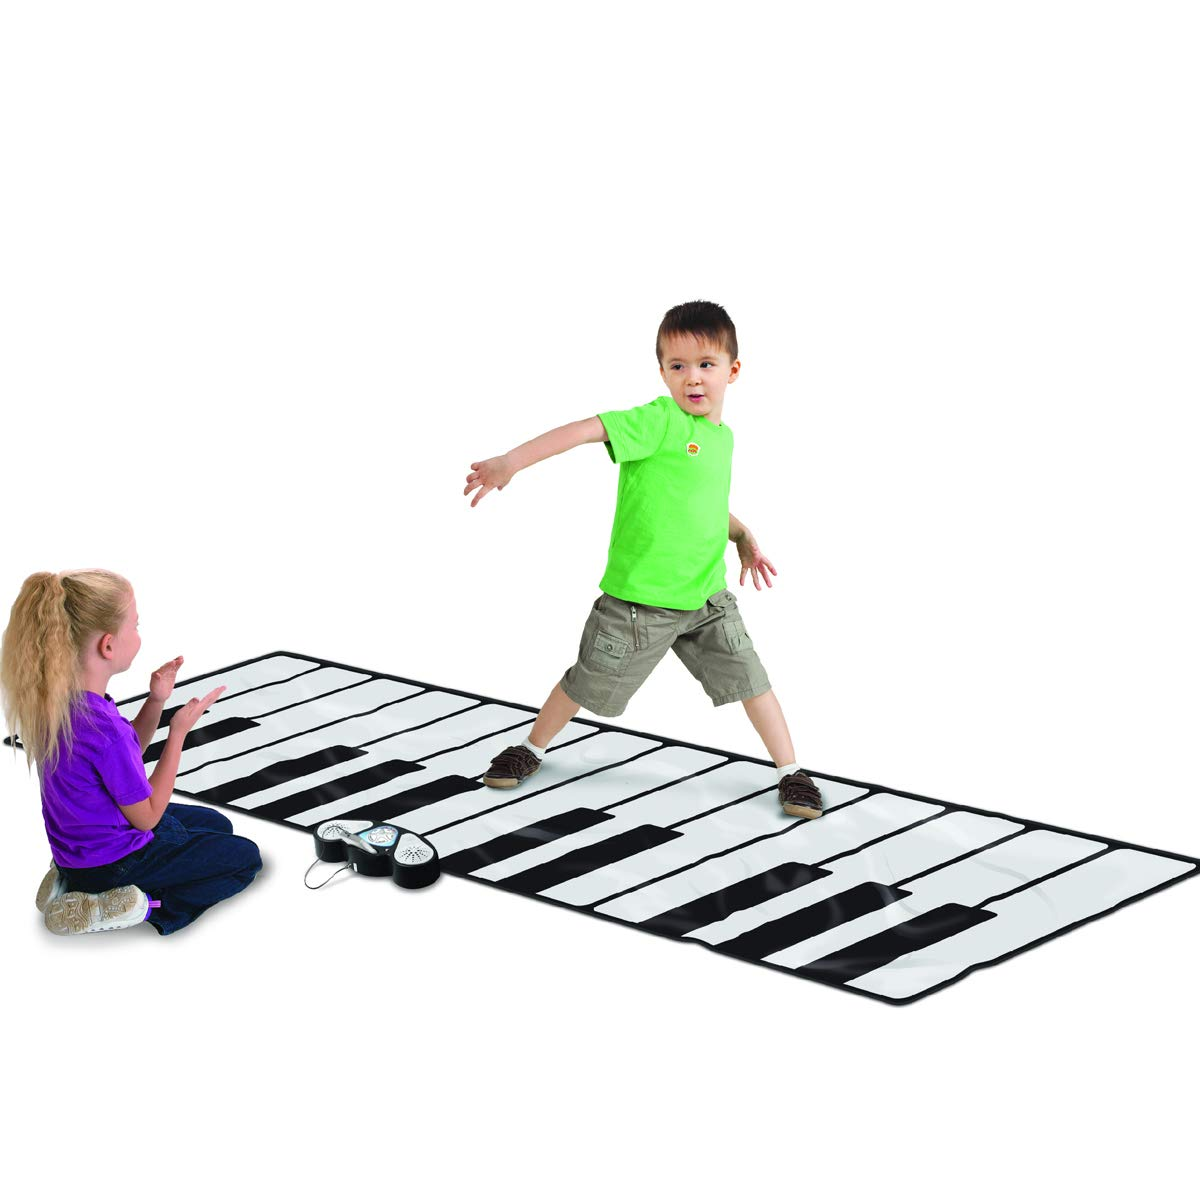 Costzon Giant Keyboard Playmat, 24 Keys Piano Play Mat, Foldable Activity Mat w/ 9 Selectable Musical Instruments, Play - Record - Playback - Demo - Tone Conversion Modes, Support MP3, Phone Play by Costzon (Image #5)